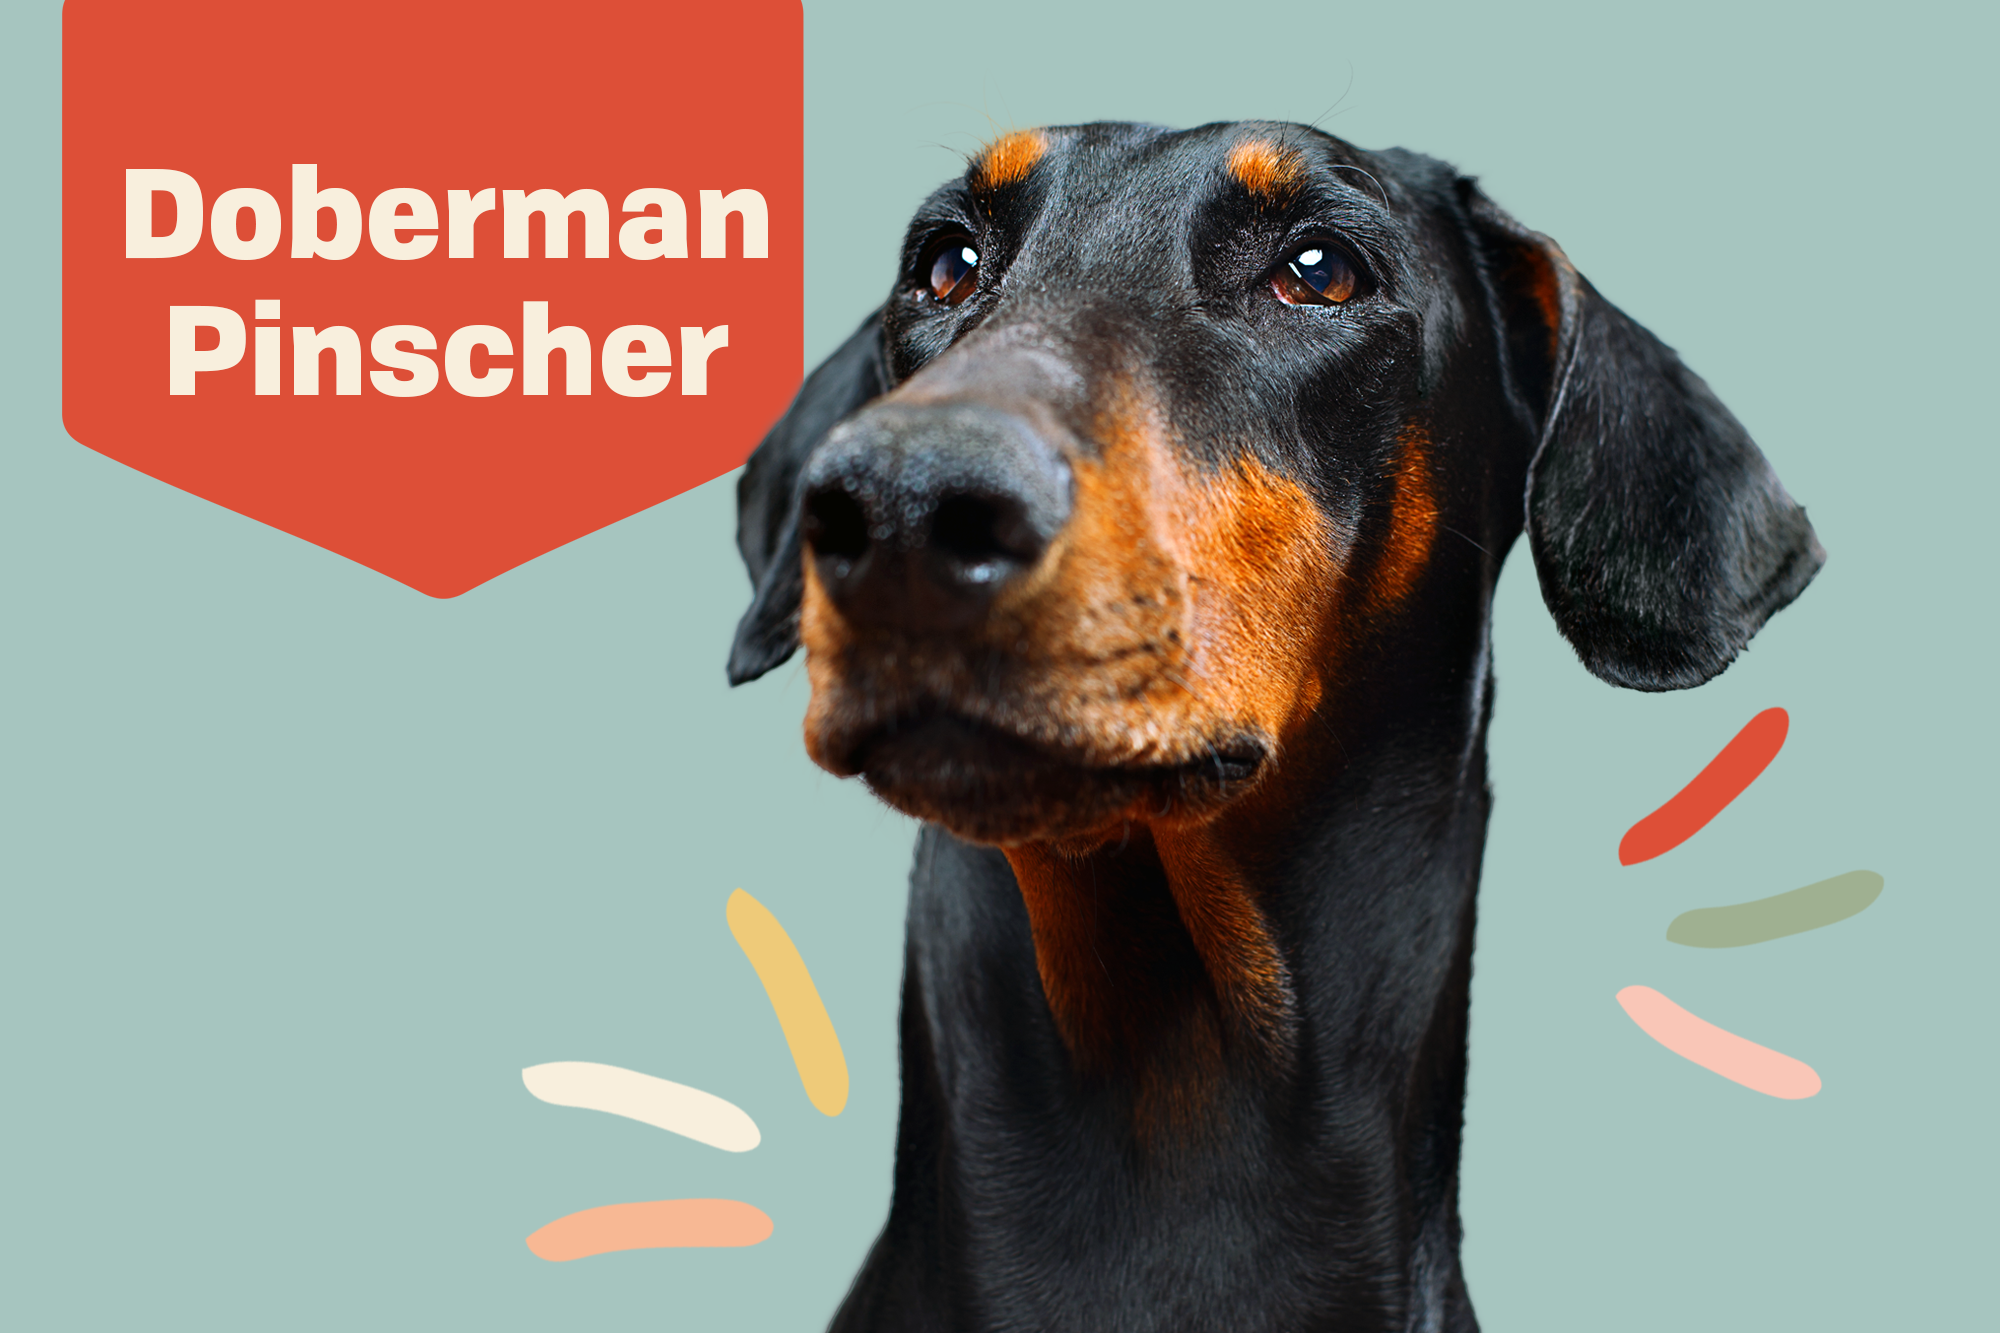 Doberman Pinscher Breed Photo